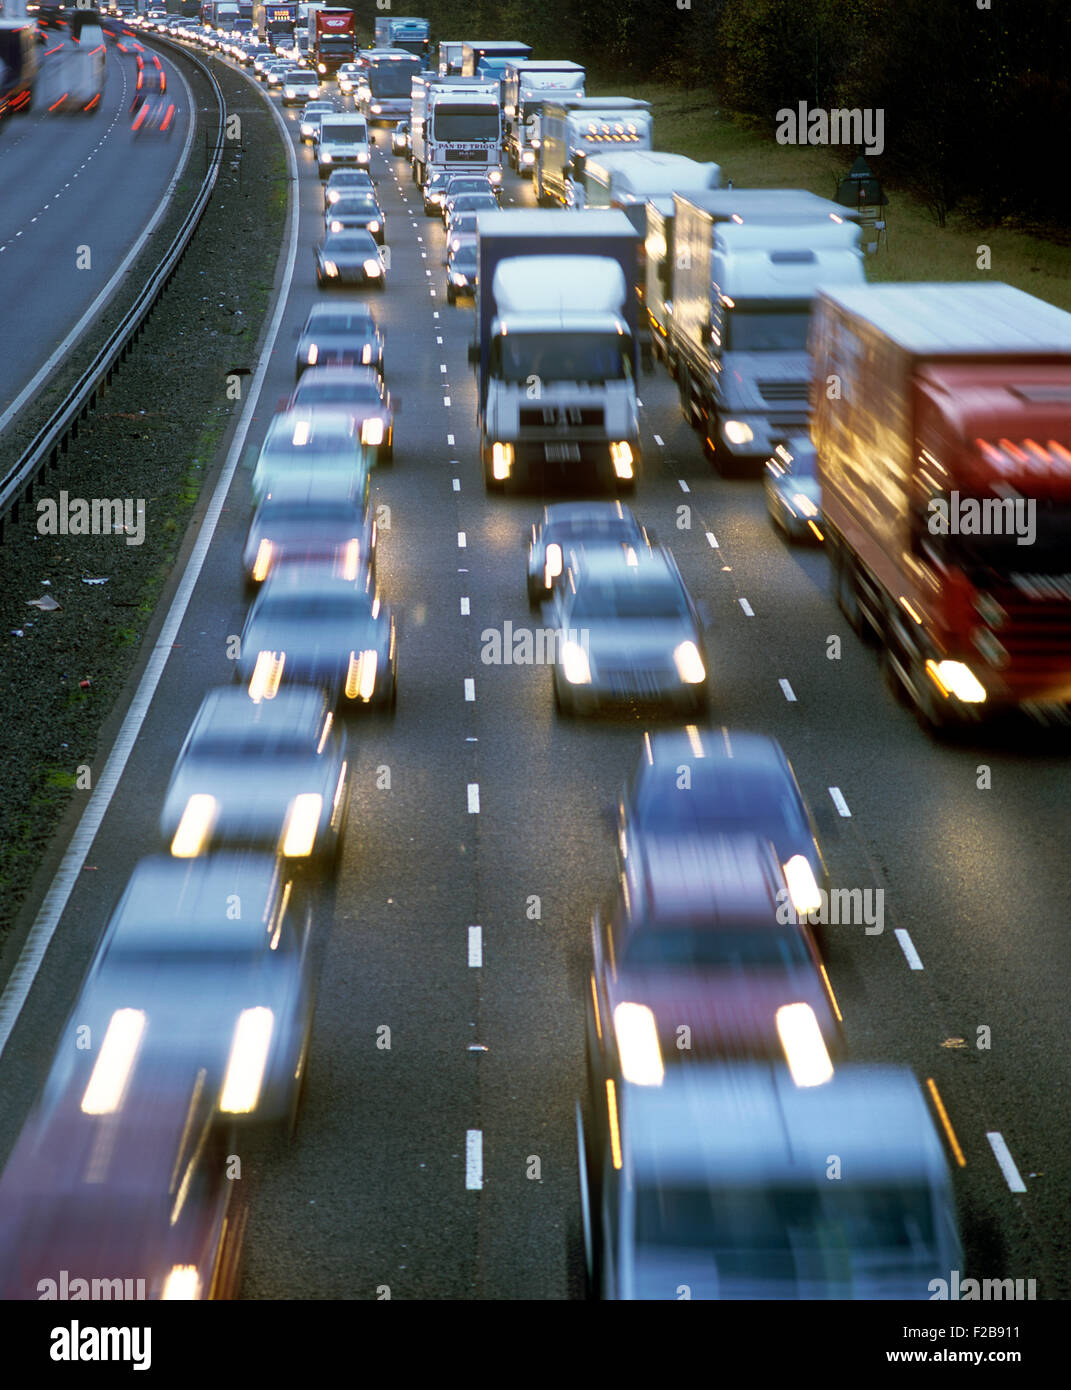 Bumper-to-bumper, nose-to-tail heavy traffic. - Stock Image